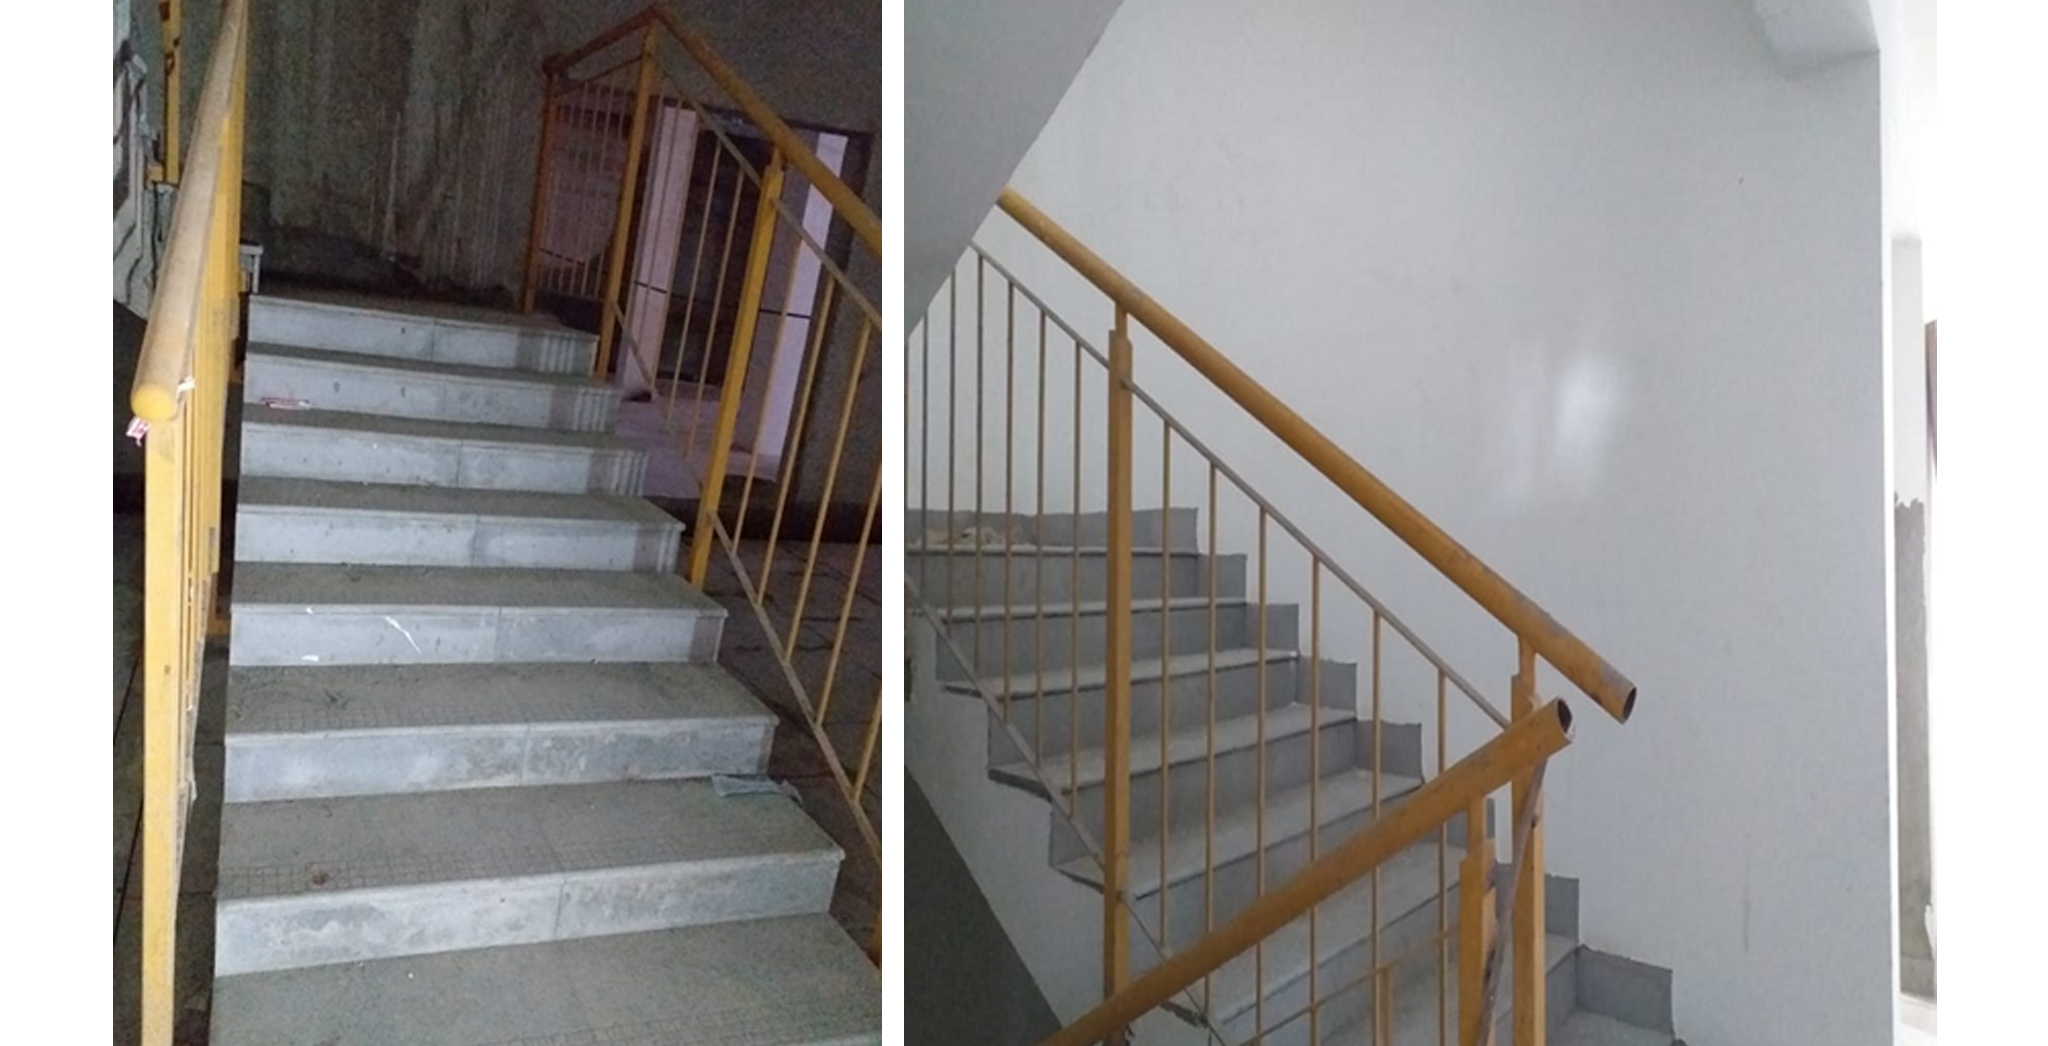 Aug 2021 - Block N, P and J: Staircase Flooring Works in progress at basement and above floor levels